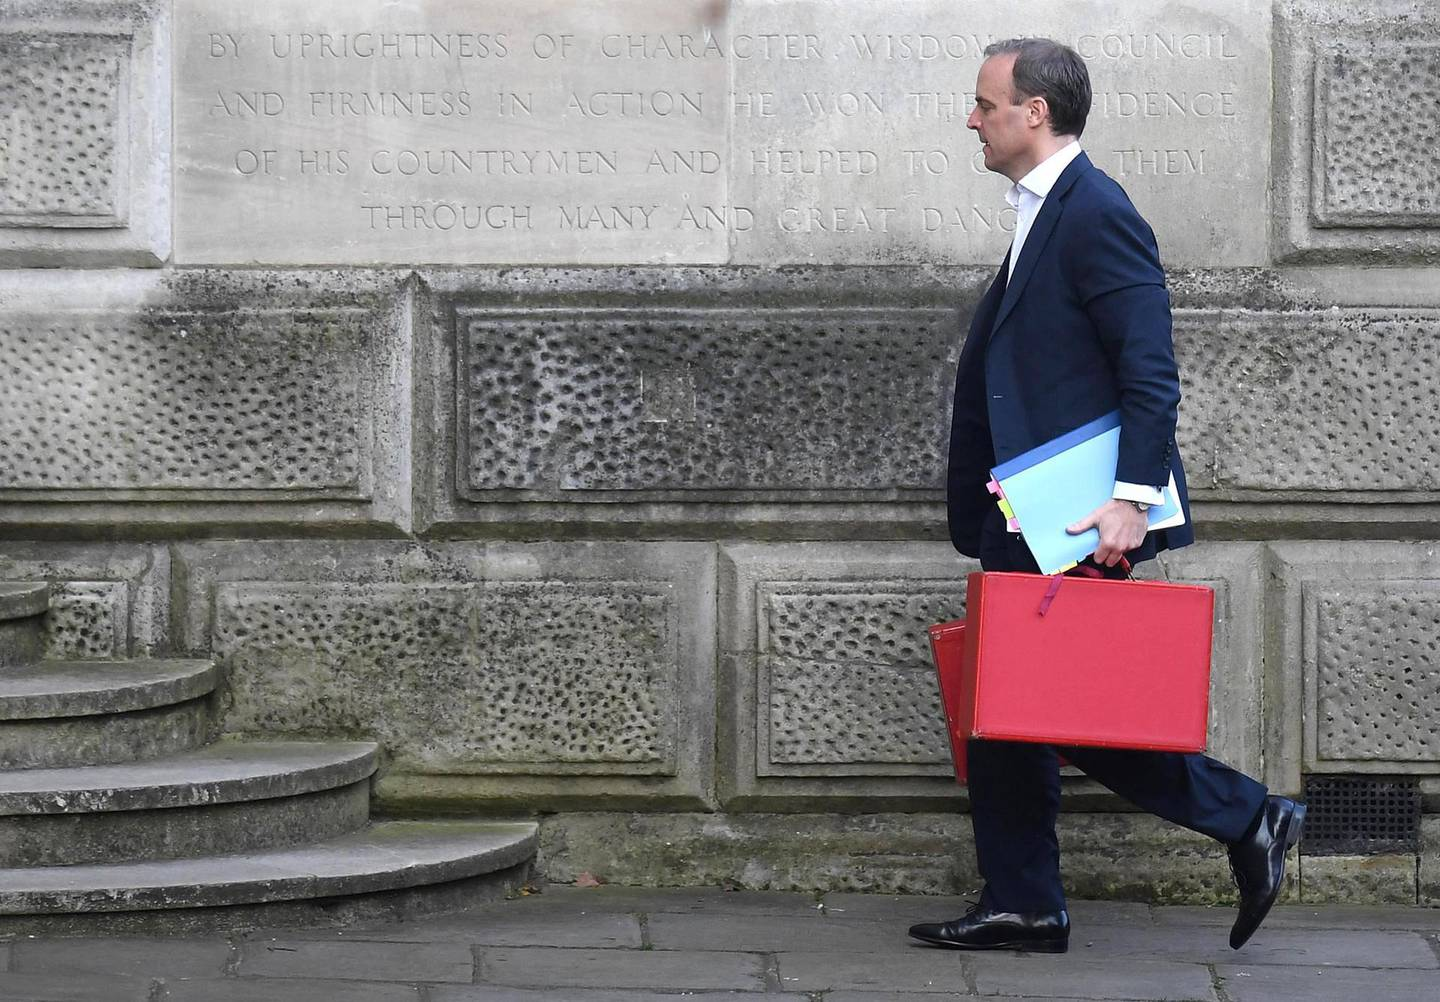 epa08352229 Britain's Foreign Secretary Dominic Raab arrives at Downing Street ahead of a COBRA meeting in London, Britain, 09 April 2020. The COBRA meeting is being held to discuss the UK lockdown measures. Countries around the world are taking increased measures to stem the widespread of the SARS-CoV-2 coronavirus which causes the Covid-19 disease.  EPA/NEIL HALL